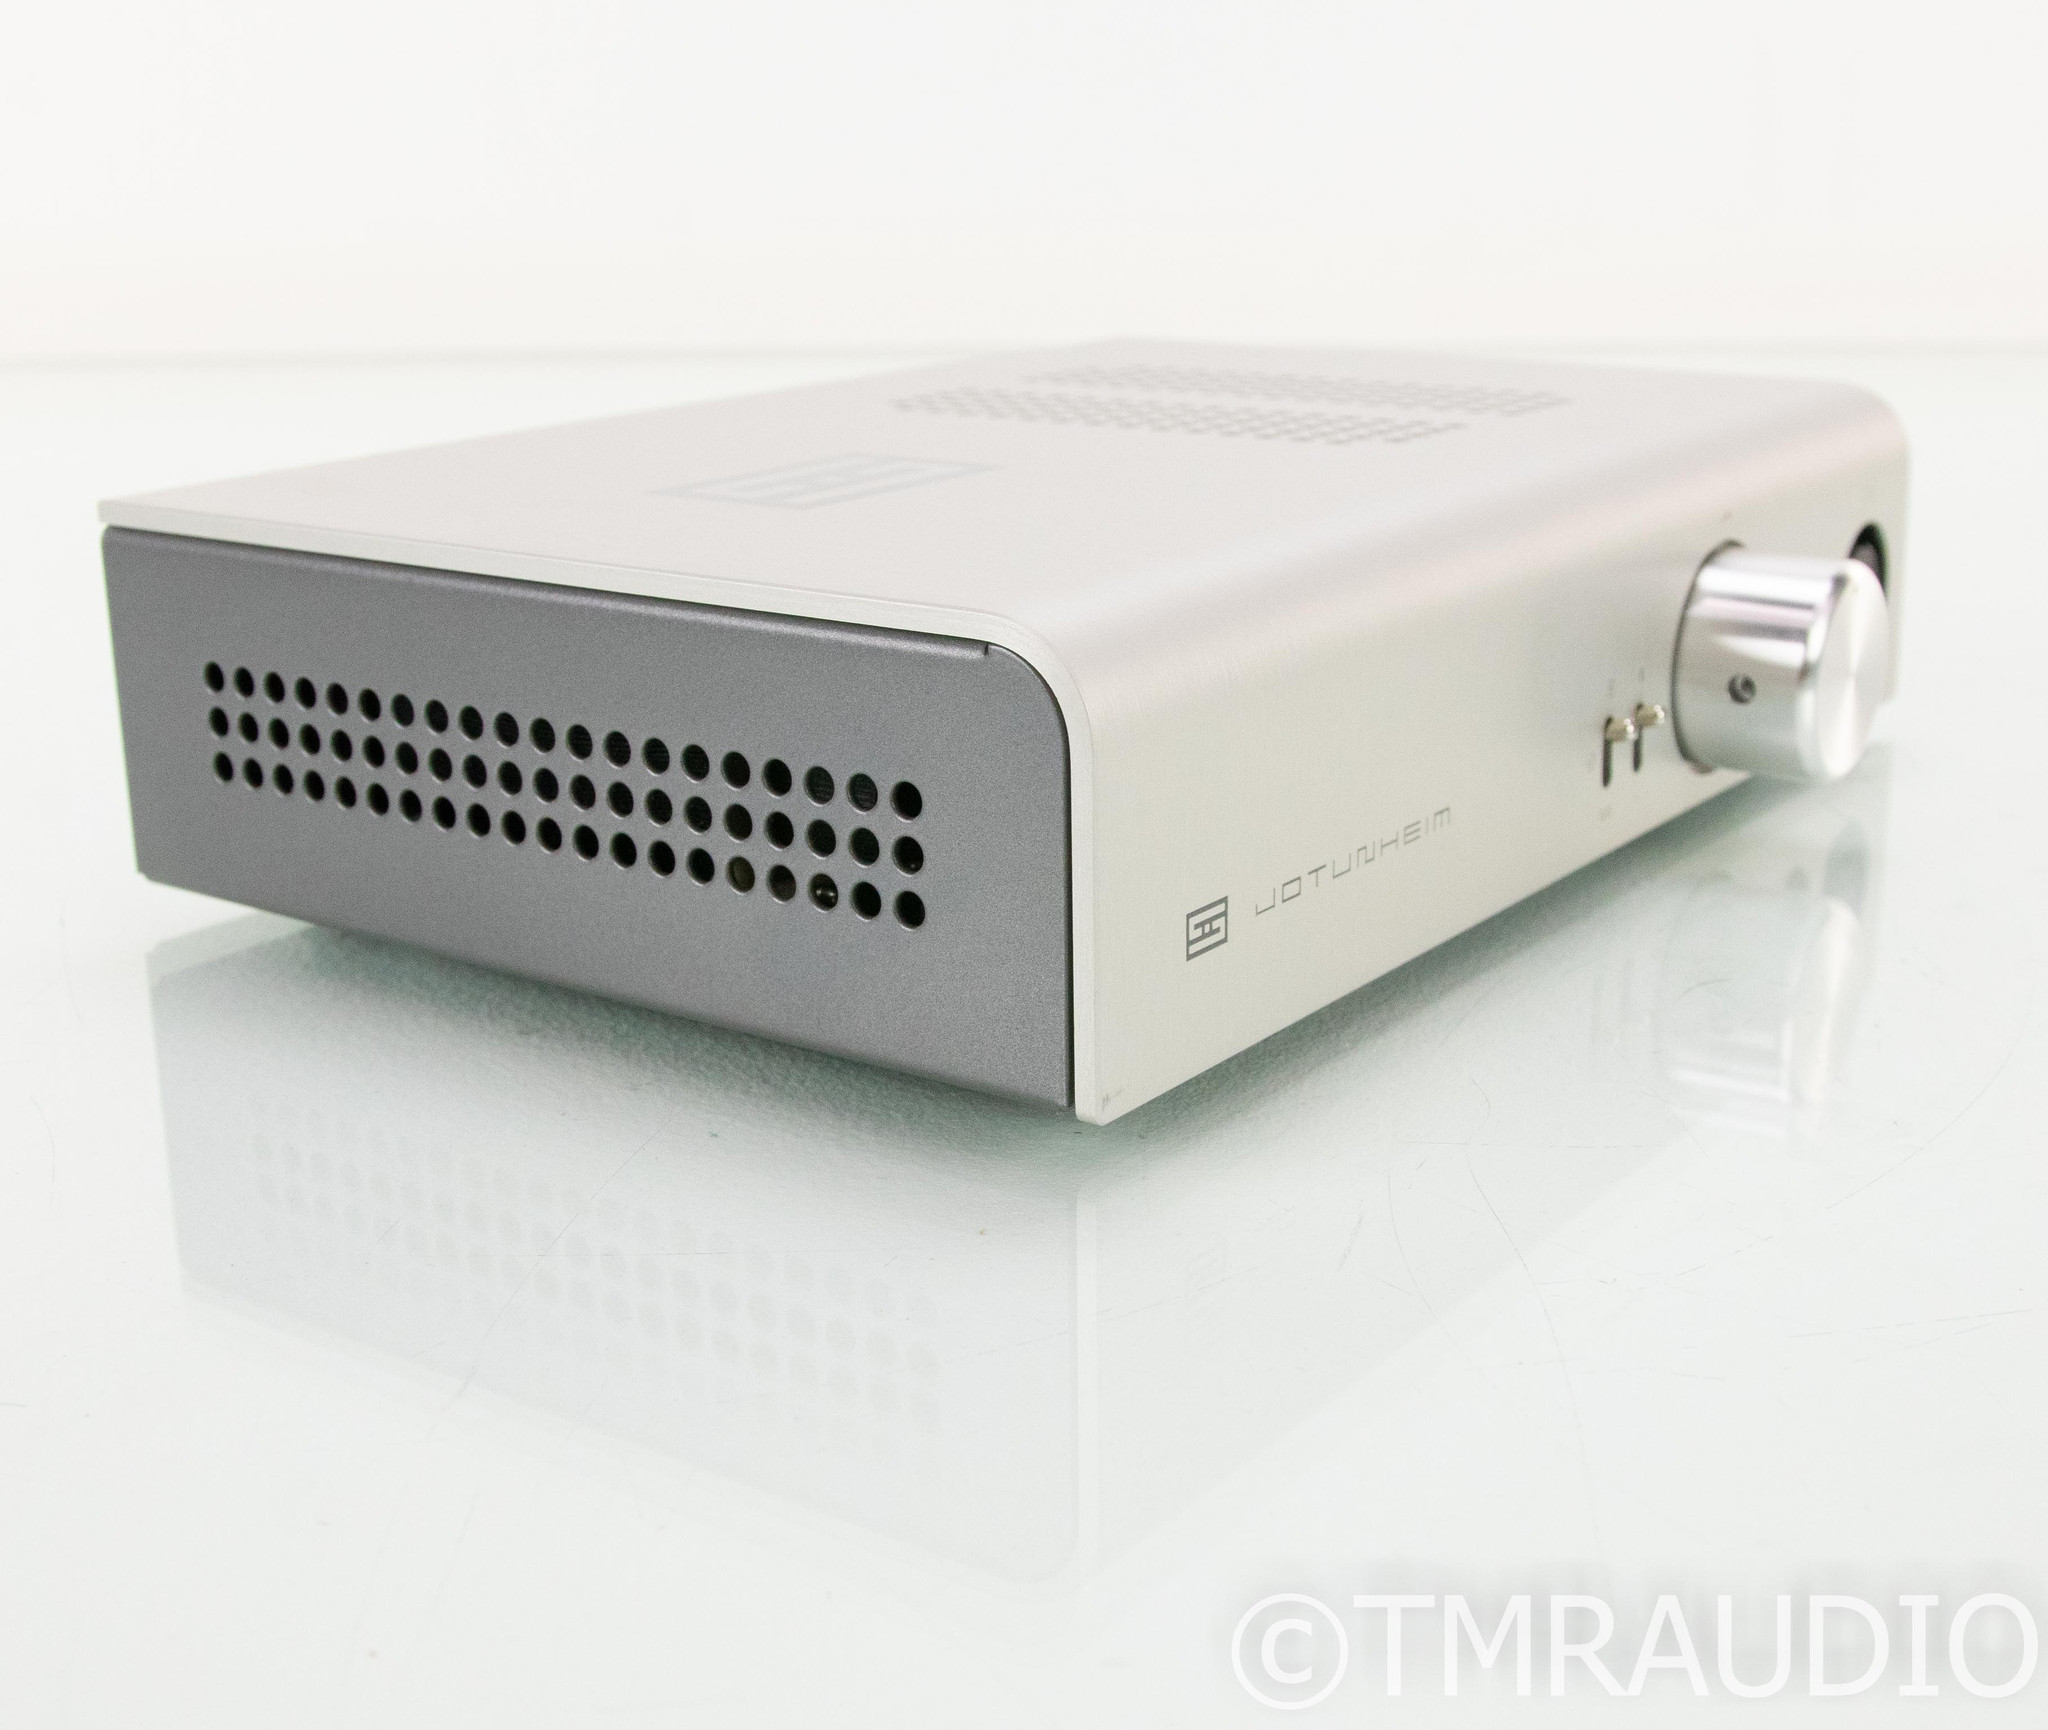 Schiit Jotunheim Headphone Amplifier